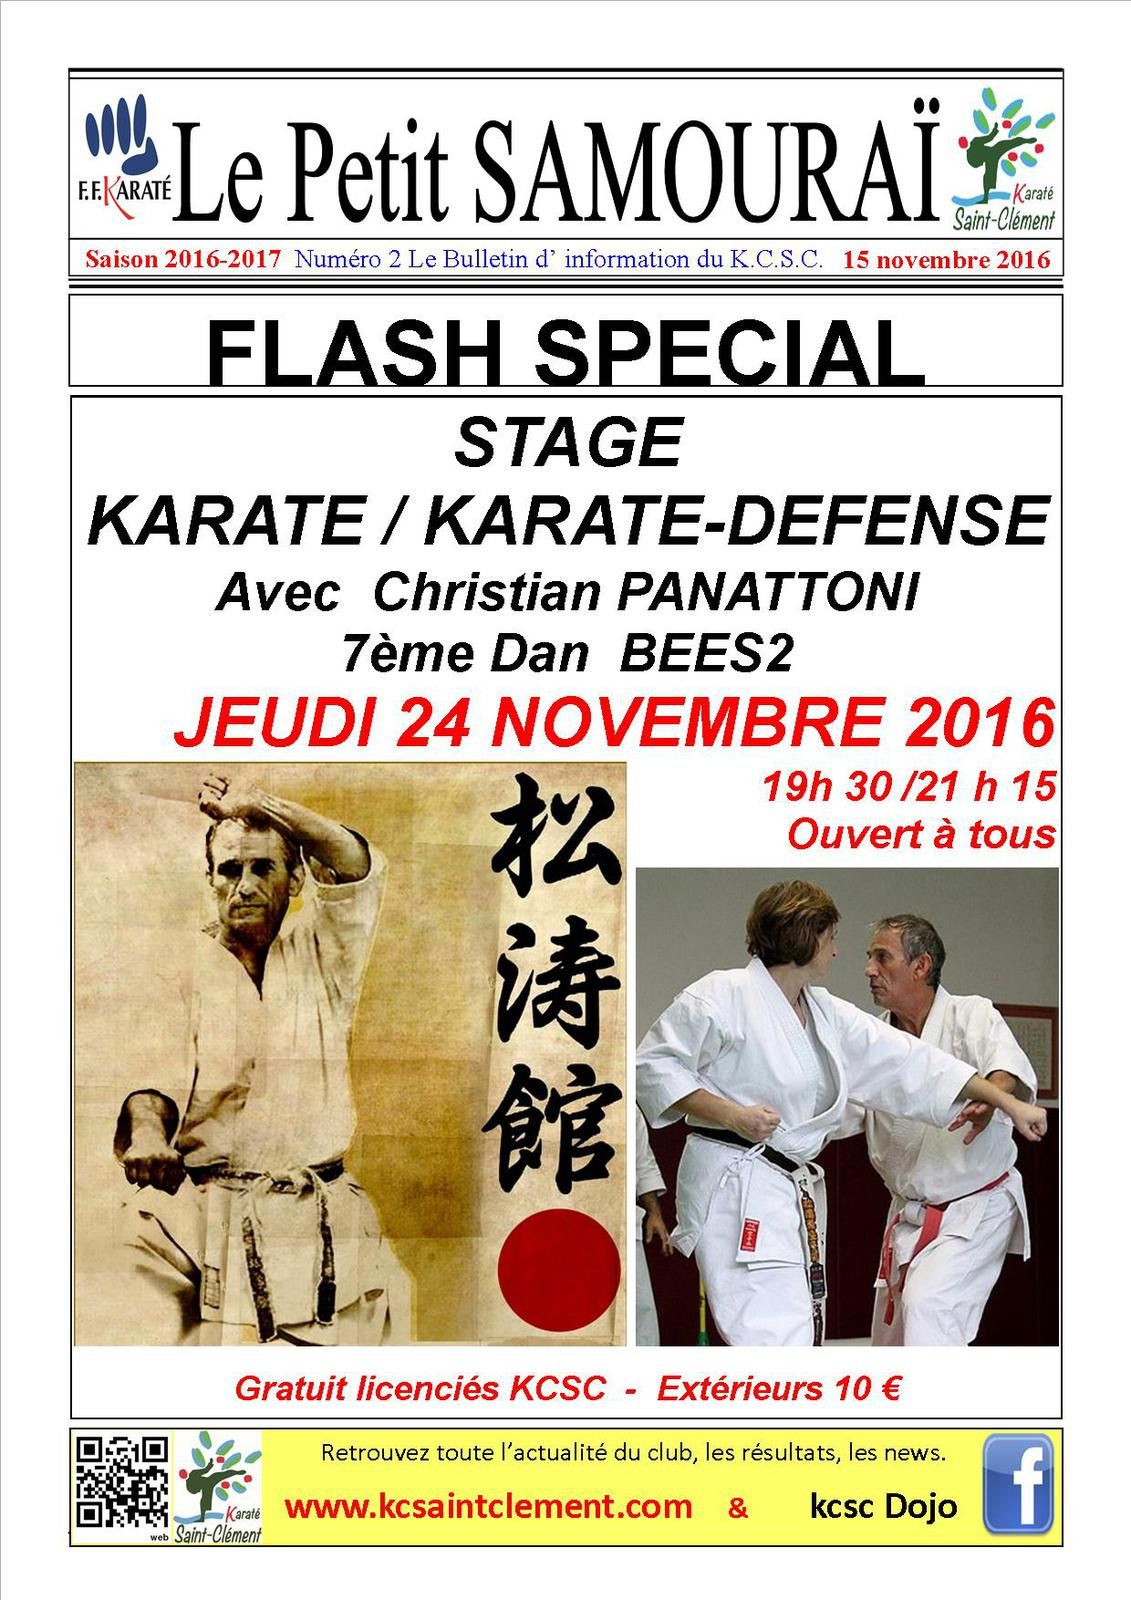 STAGE KARATE / KARATE-DEFENSE JEUDI 24 NOVEMBRE